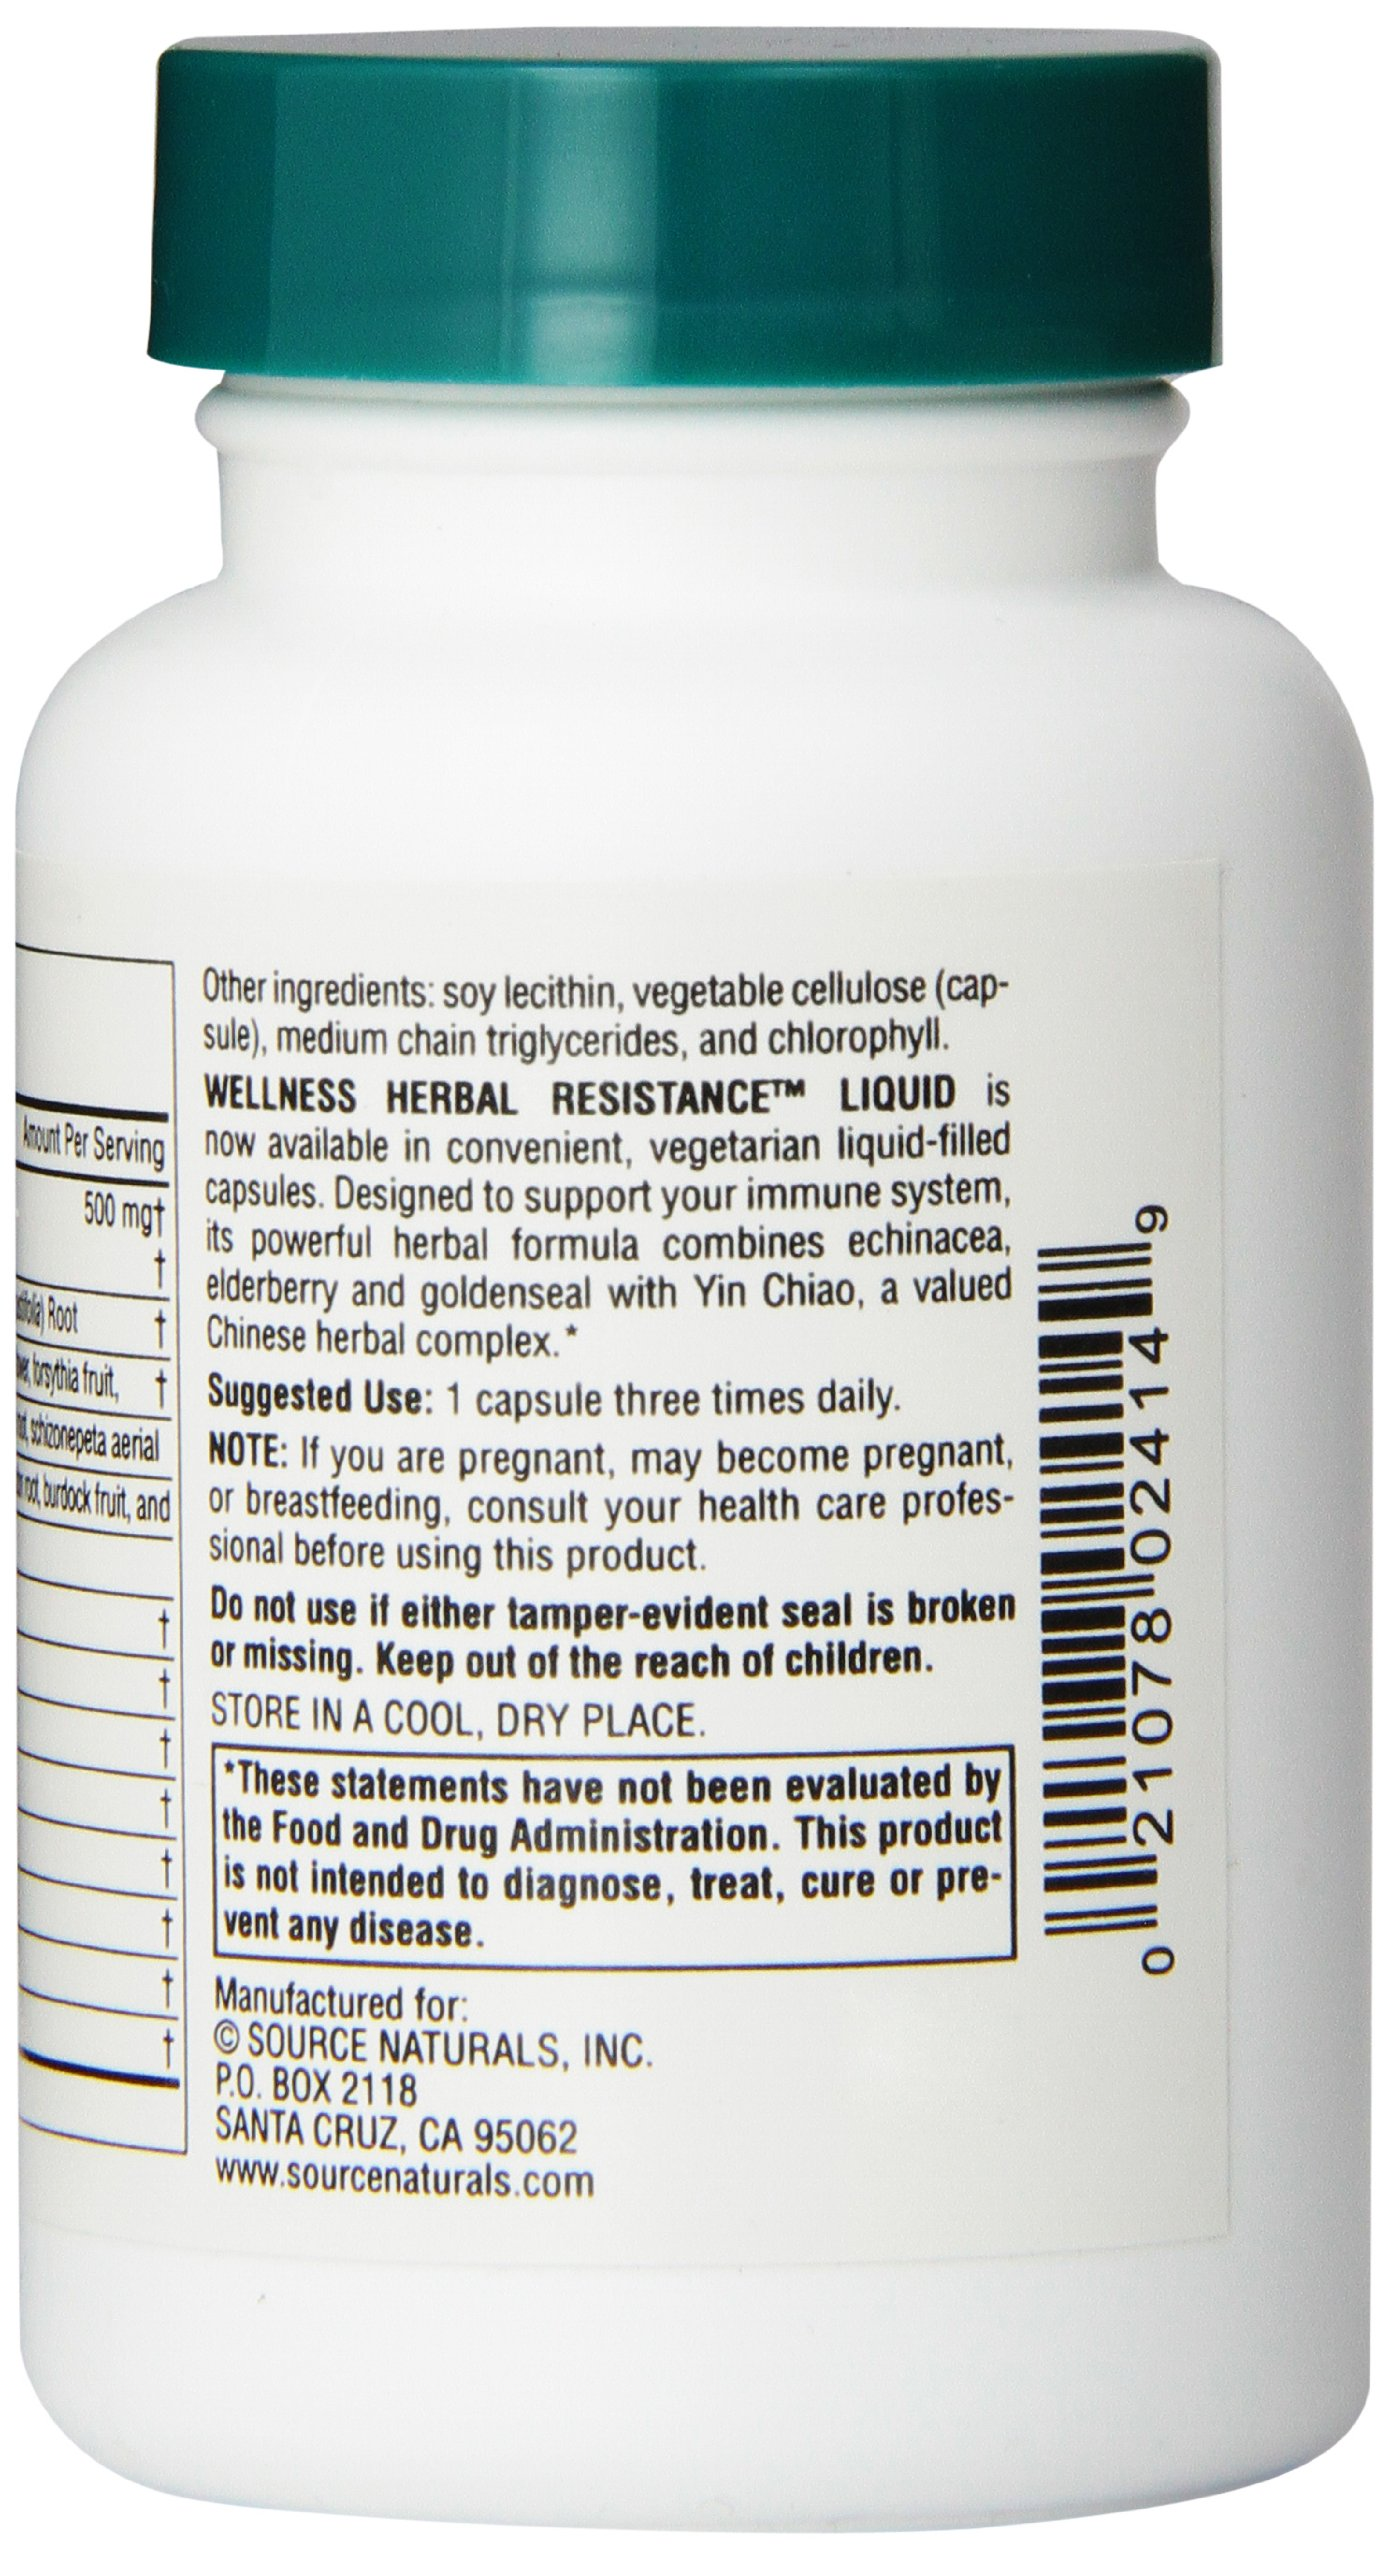 Source Naturals Wellness Herbal Resistance, with Echinacea, Goldenseal & Yin Chiao Immune Support, 60 Liquid Vegetarian Capsules by Source Naturals (Image #3)